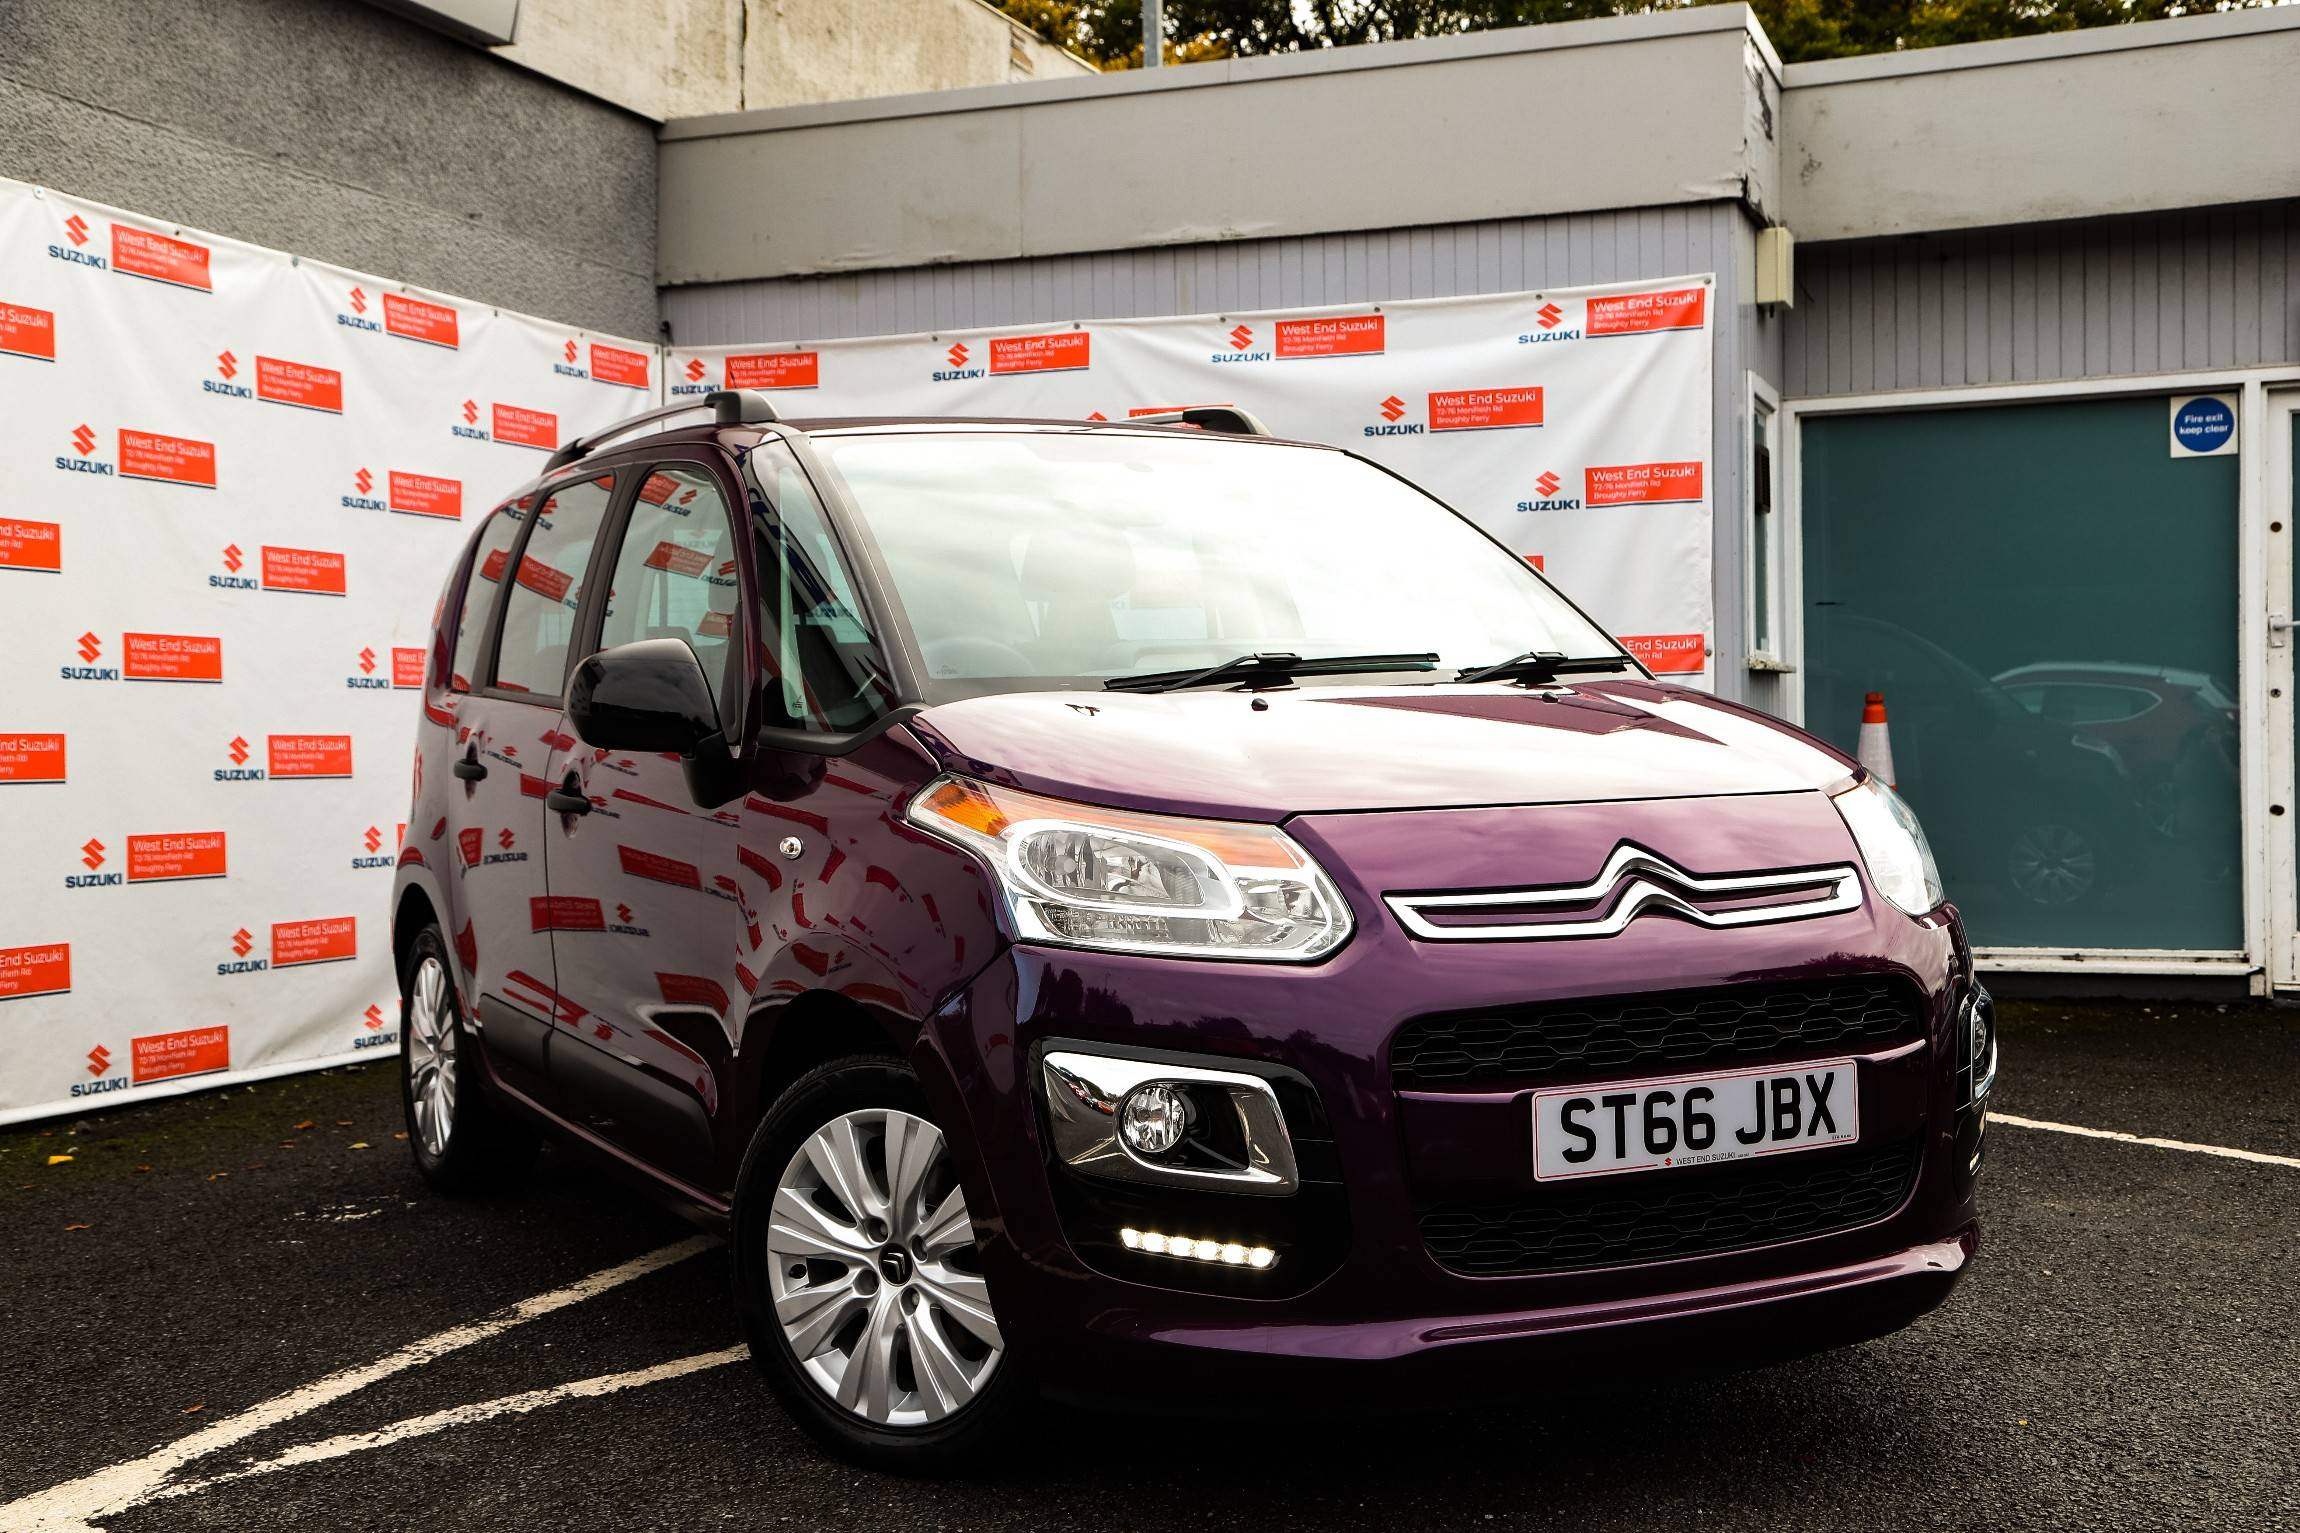 CITROEN C3 PICASSO ESTATE 1.2 PureTech Edition 5dr